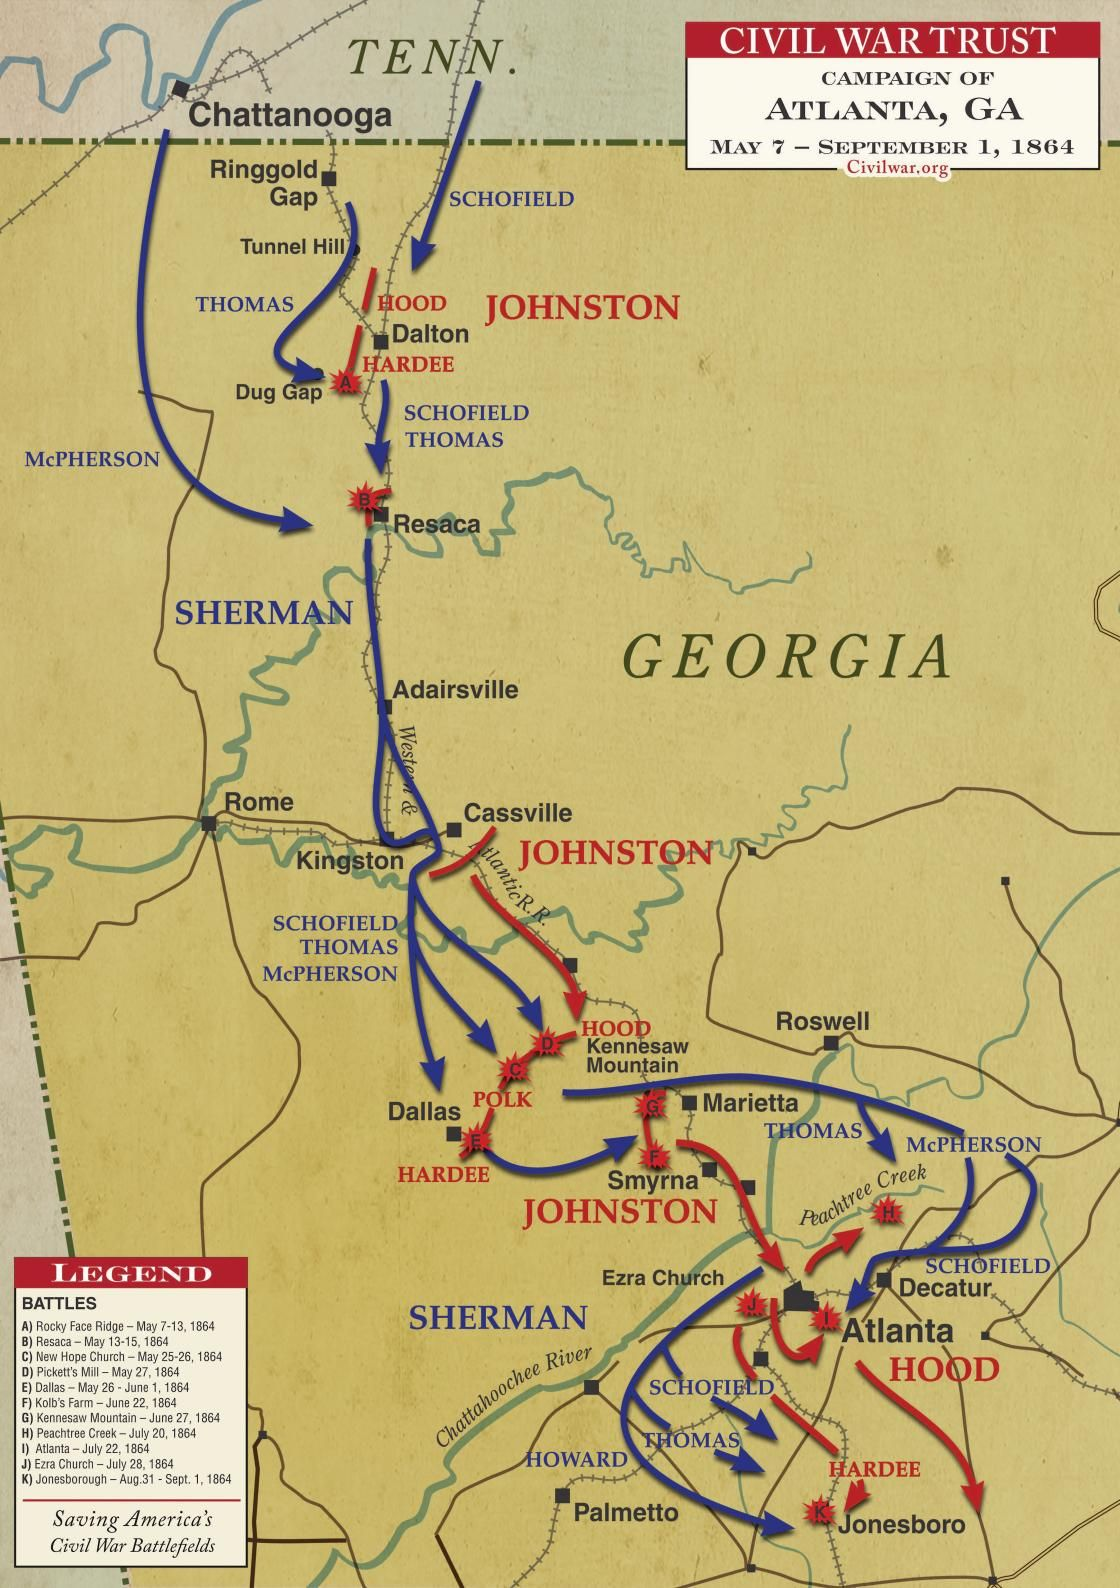 Atlanta Campaign | Civil War Battle Maps | American Civil War, War on